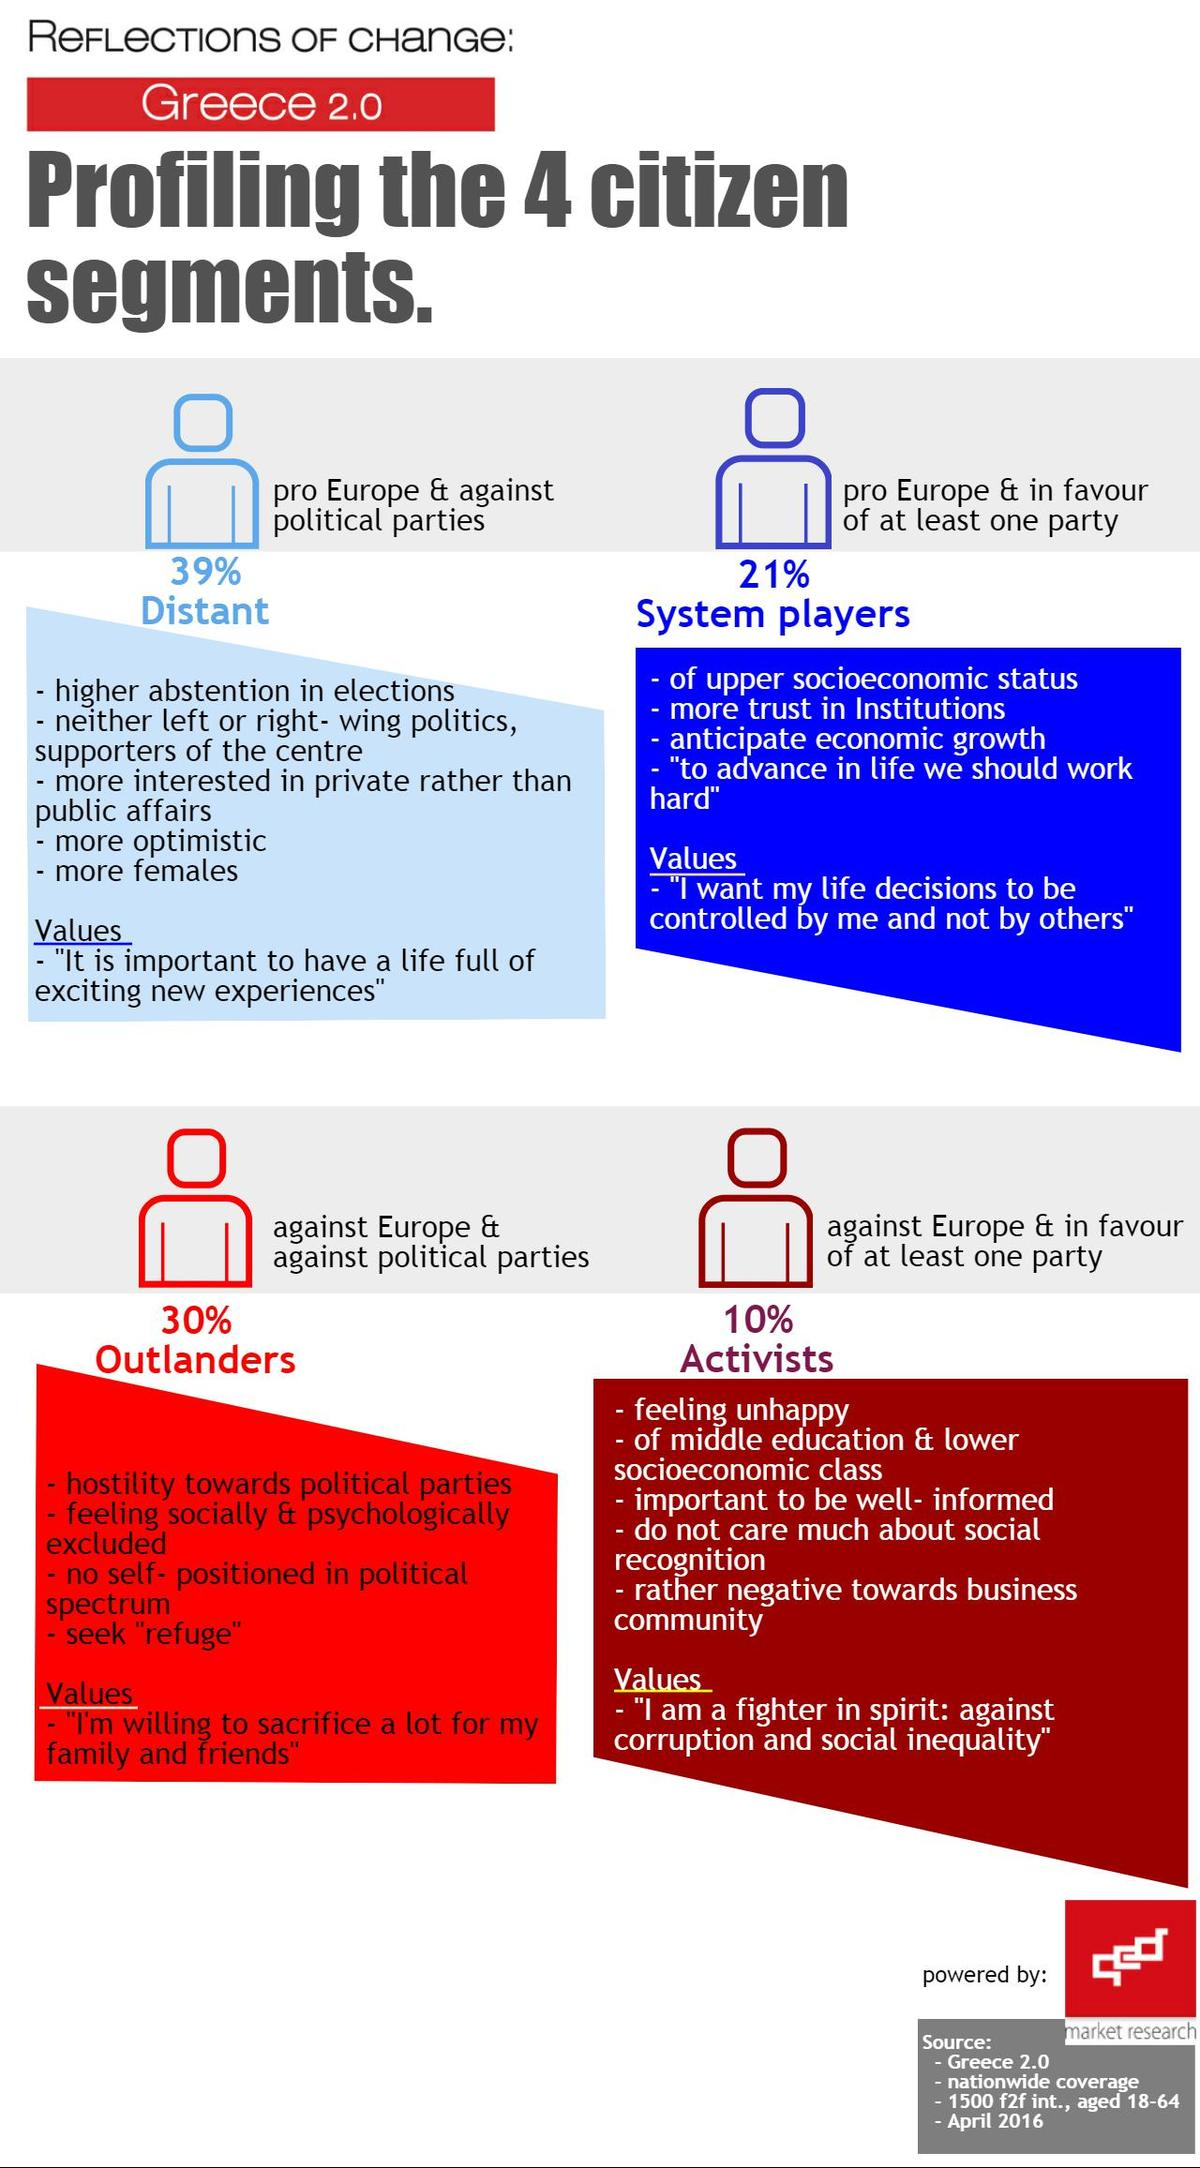 6_infographic-bulletins-greece-2-0-copy